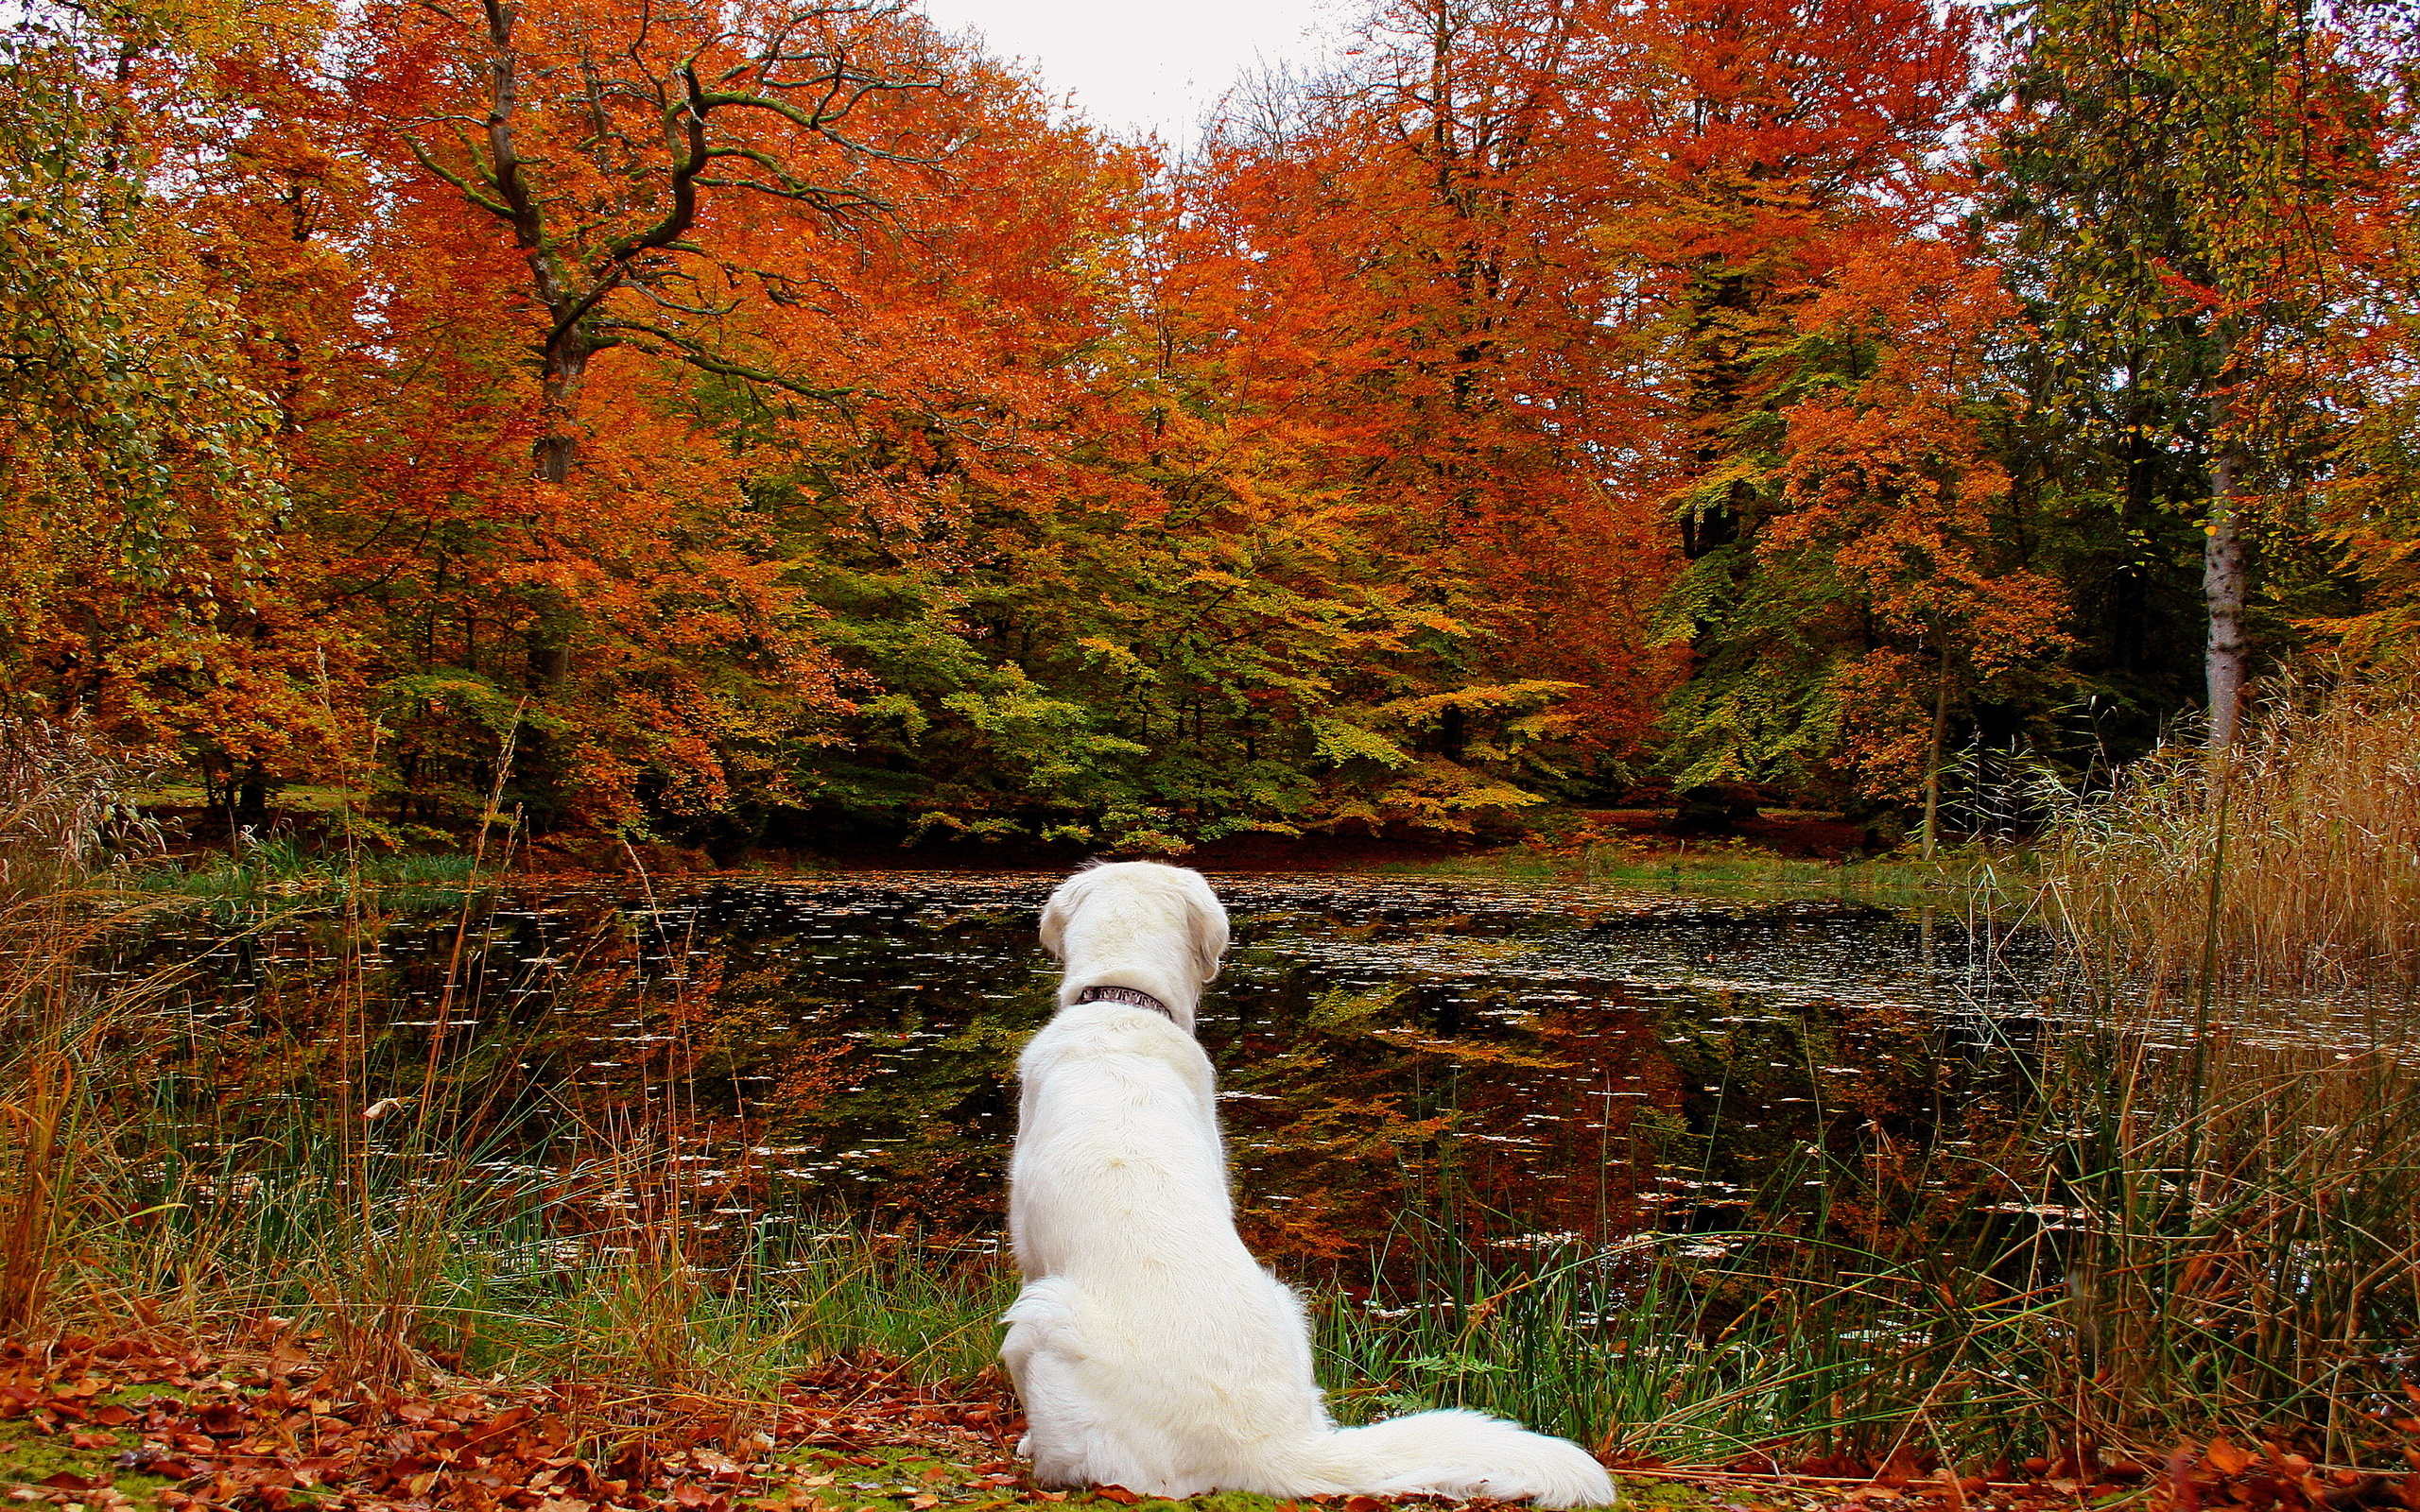 Lake leaves autumn dog forest f wallpaper 2560x1600 166519 2560x1600